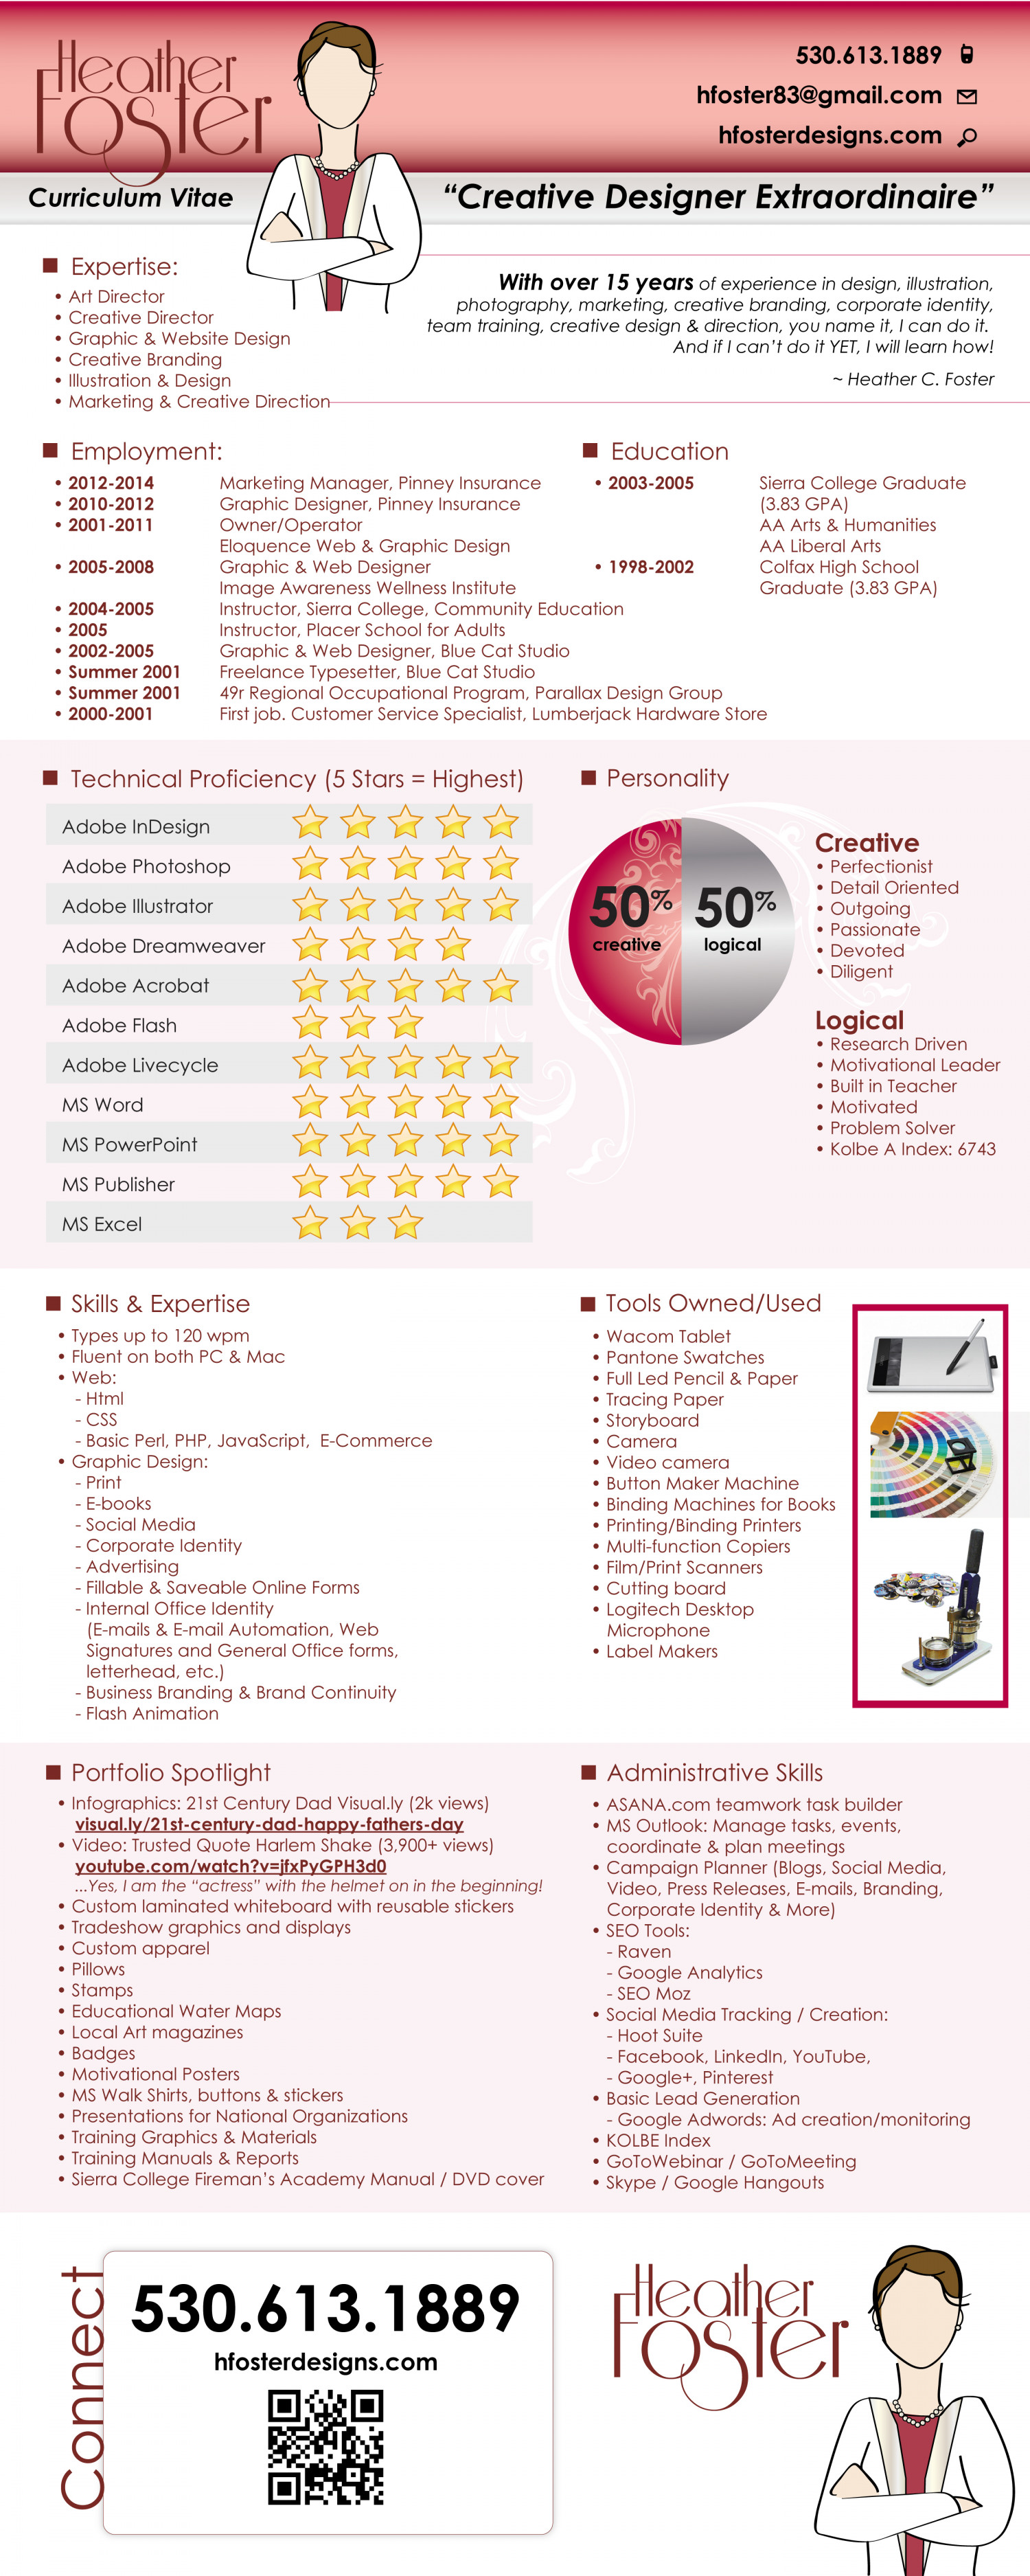 Heather Foster: Curriculum Vitae Infographic